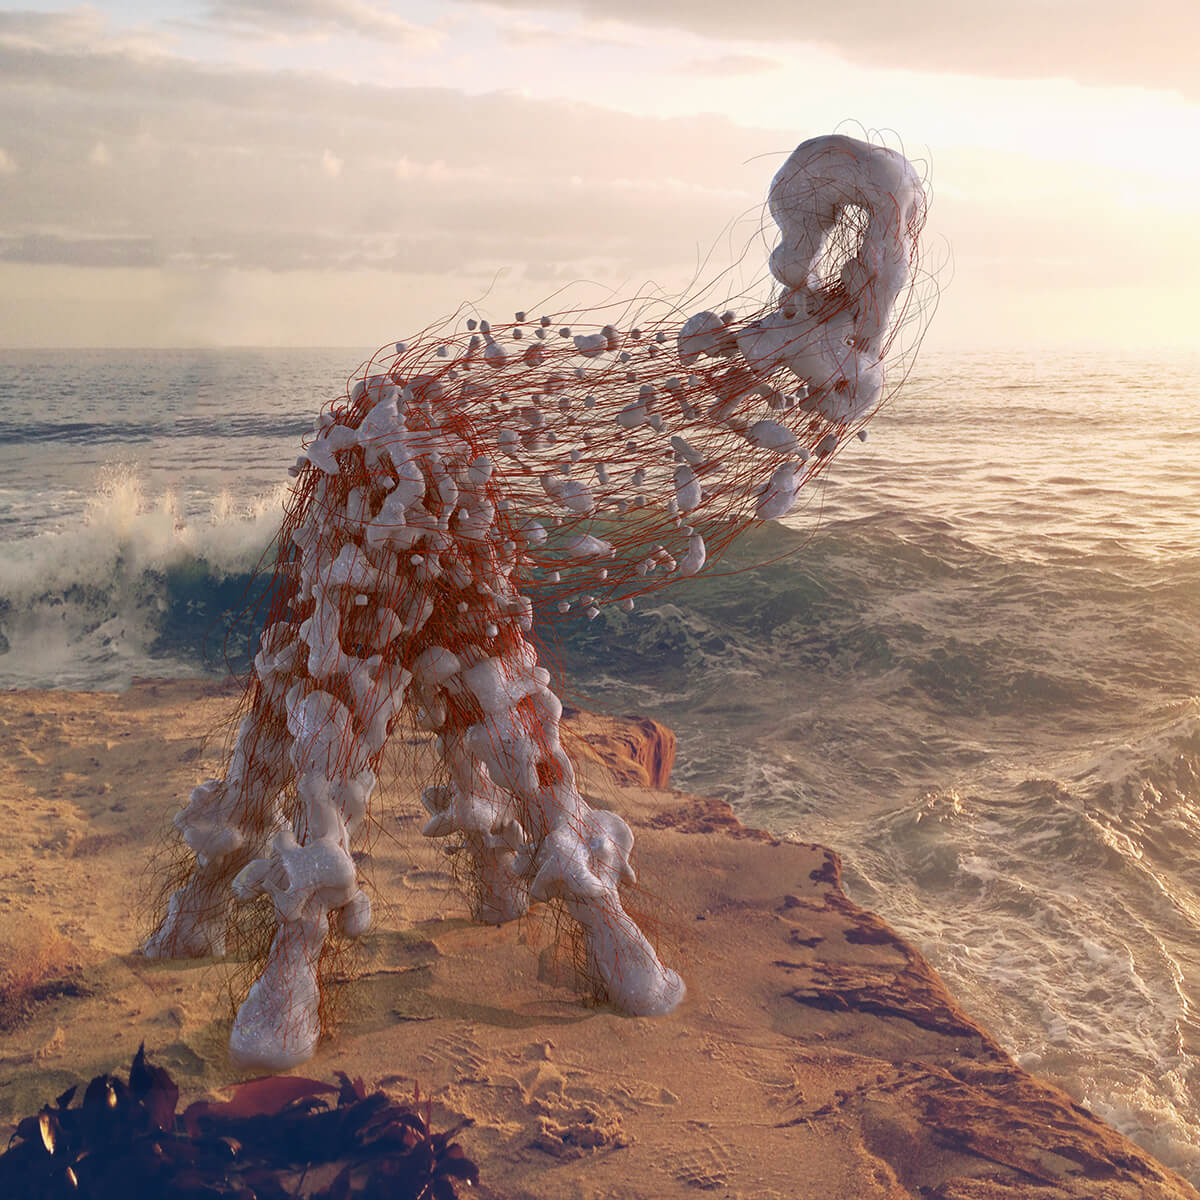 3D render of organic alien animal made out of meat lumps and strings staring at a sea